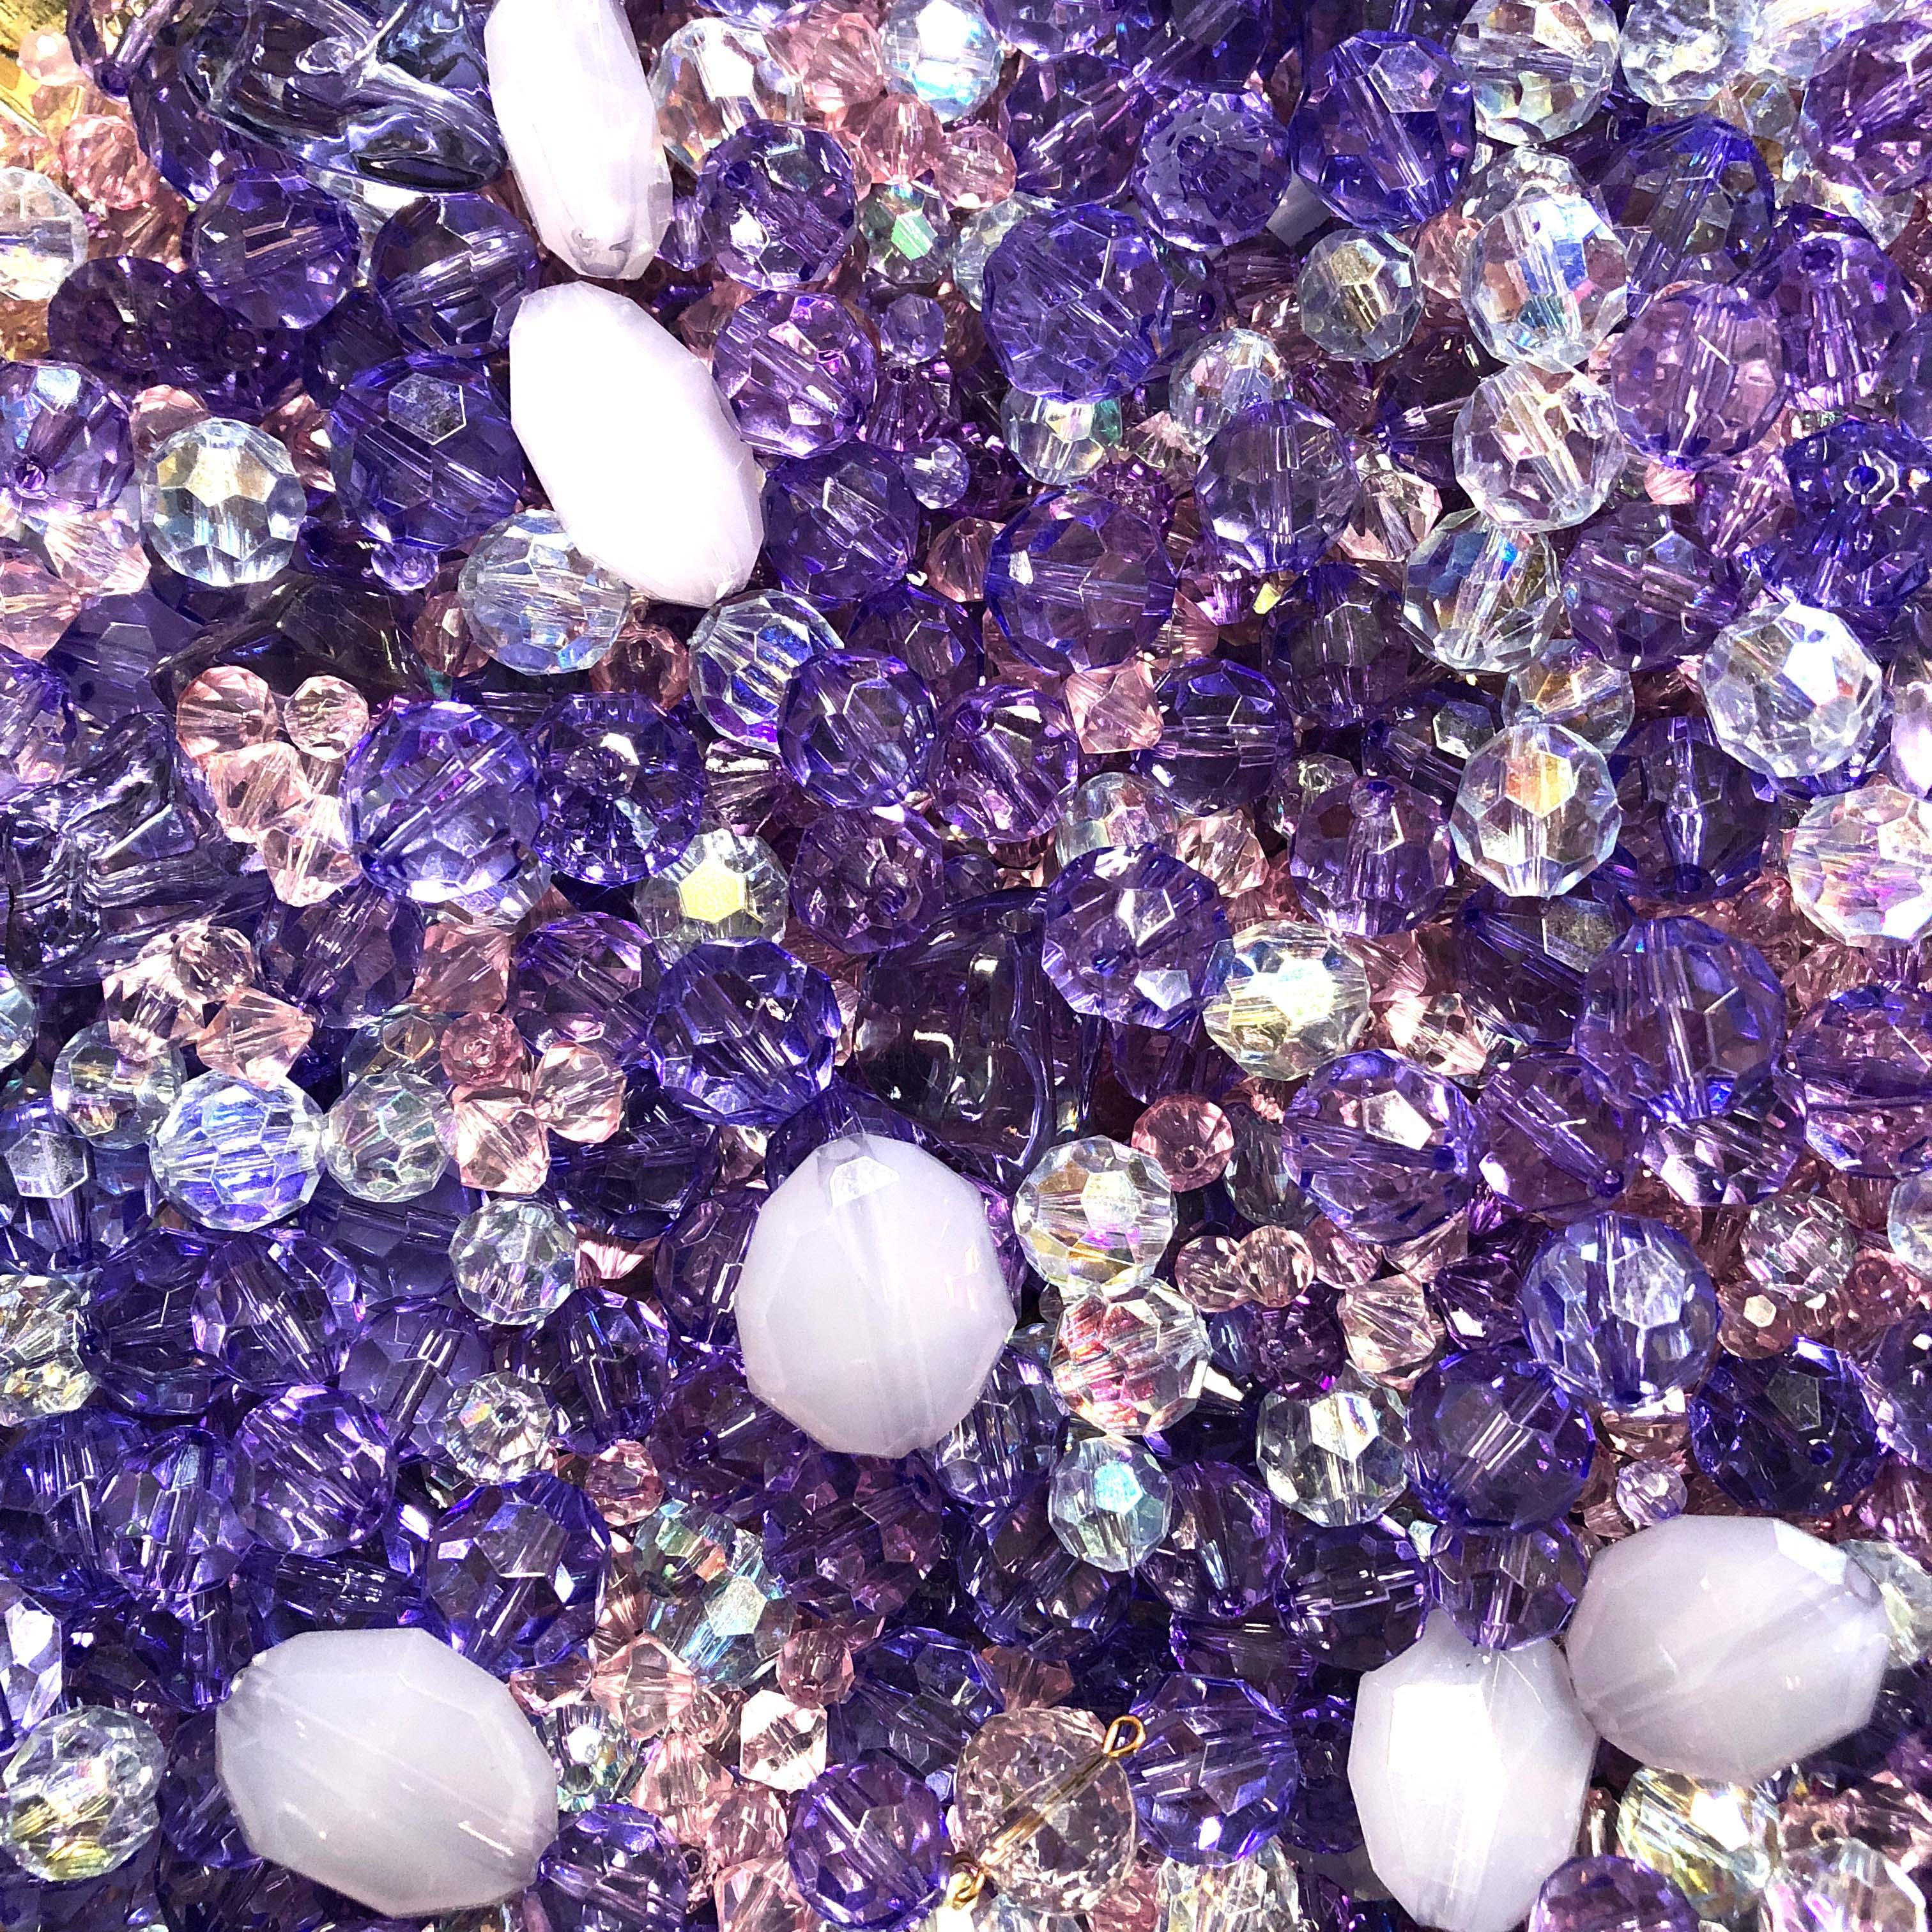 bead mix, designer beads, acrylic beads, colorful beads, fun beads, designer quality beads, plastic, plastic beads, purple beads, tanzanite color beads, flashy, beading, assorted beads, mixed beads,  big beads, small beads, B'sue Boutiques